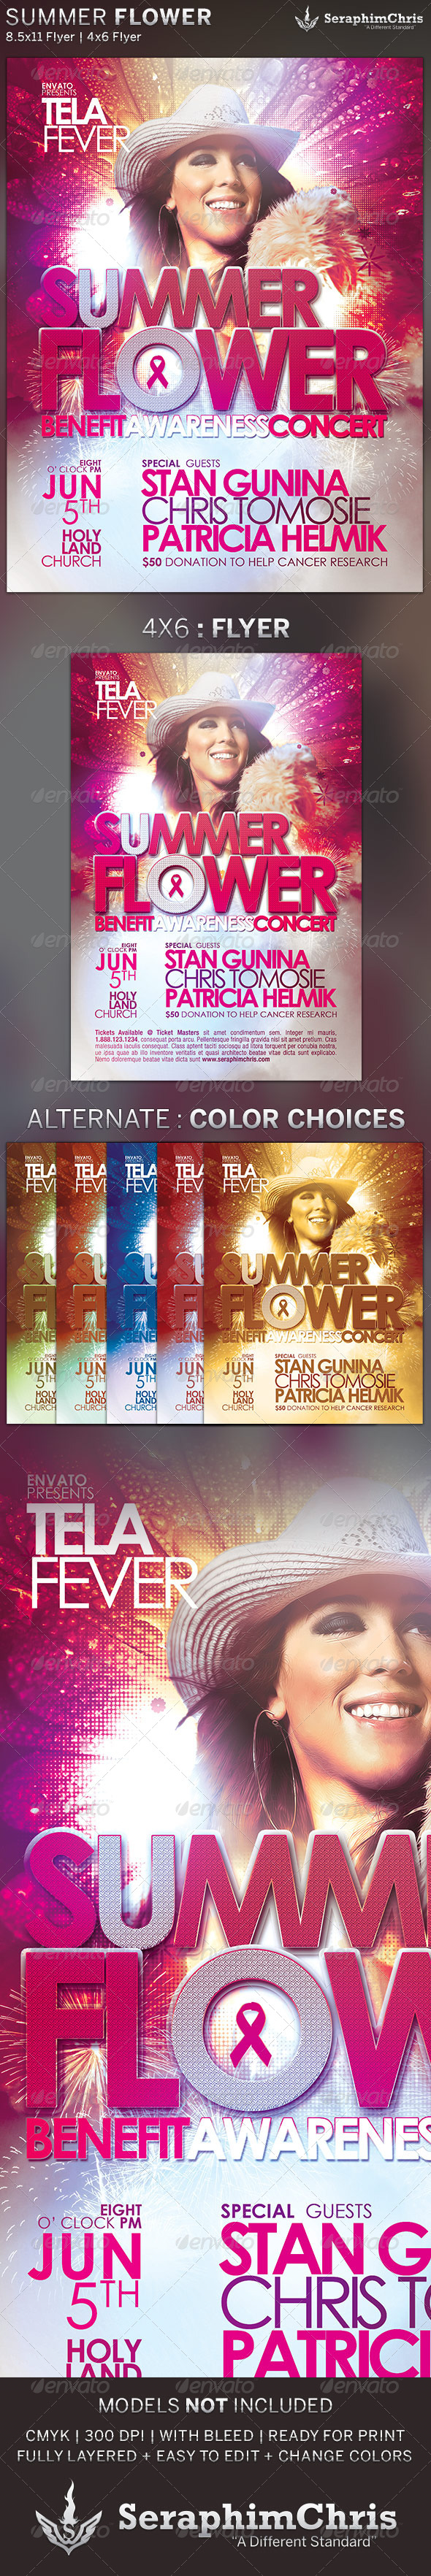 Summer Flower: Church Concert Flyer Template - Concerts Events